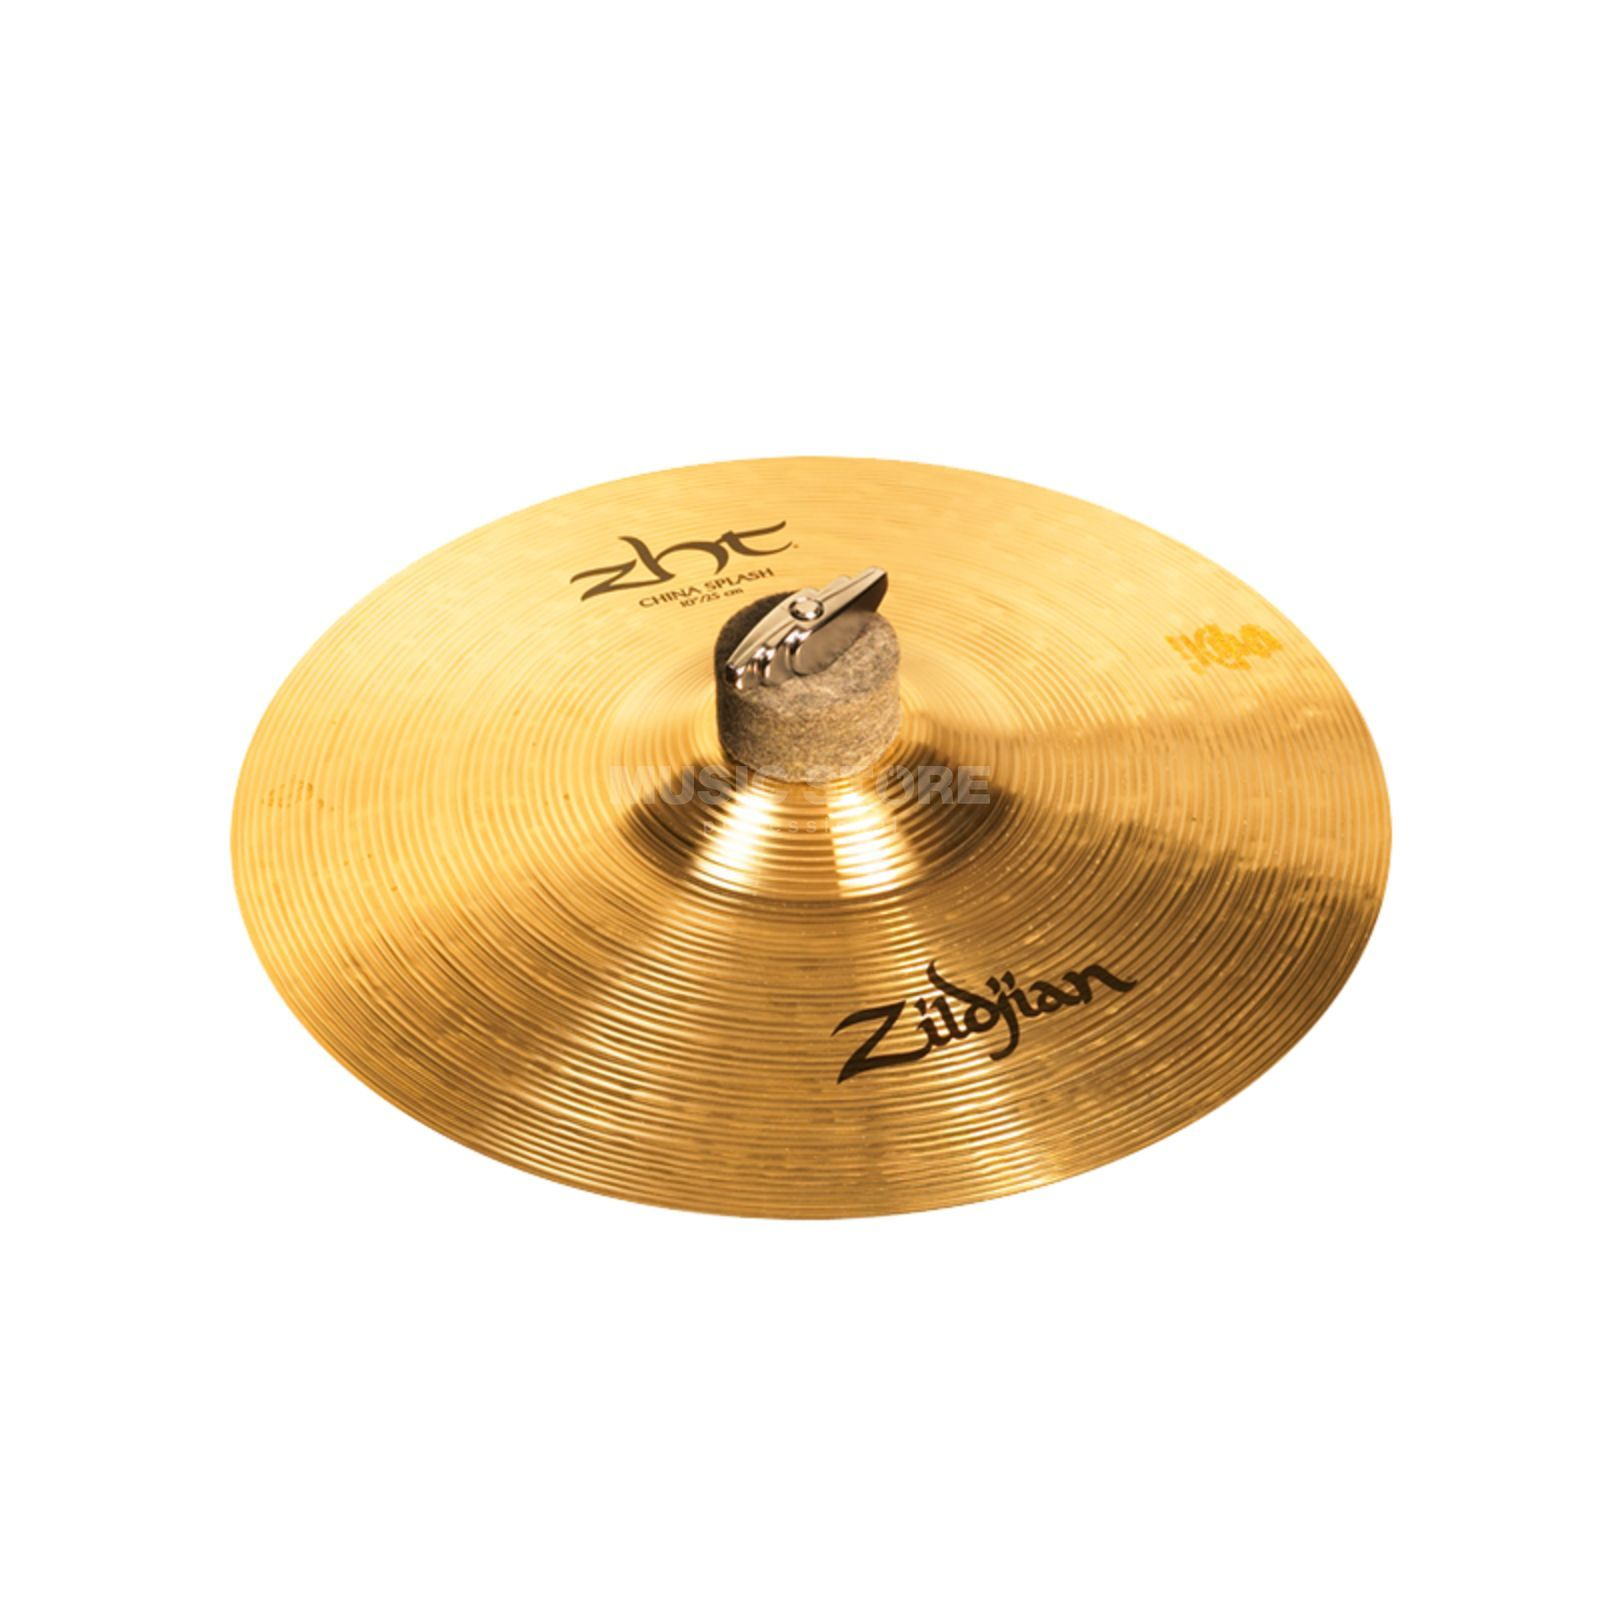 "Zildjian ZHT China Splash 10"" Traditional Finish Produktbild"